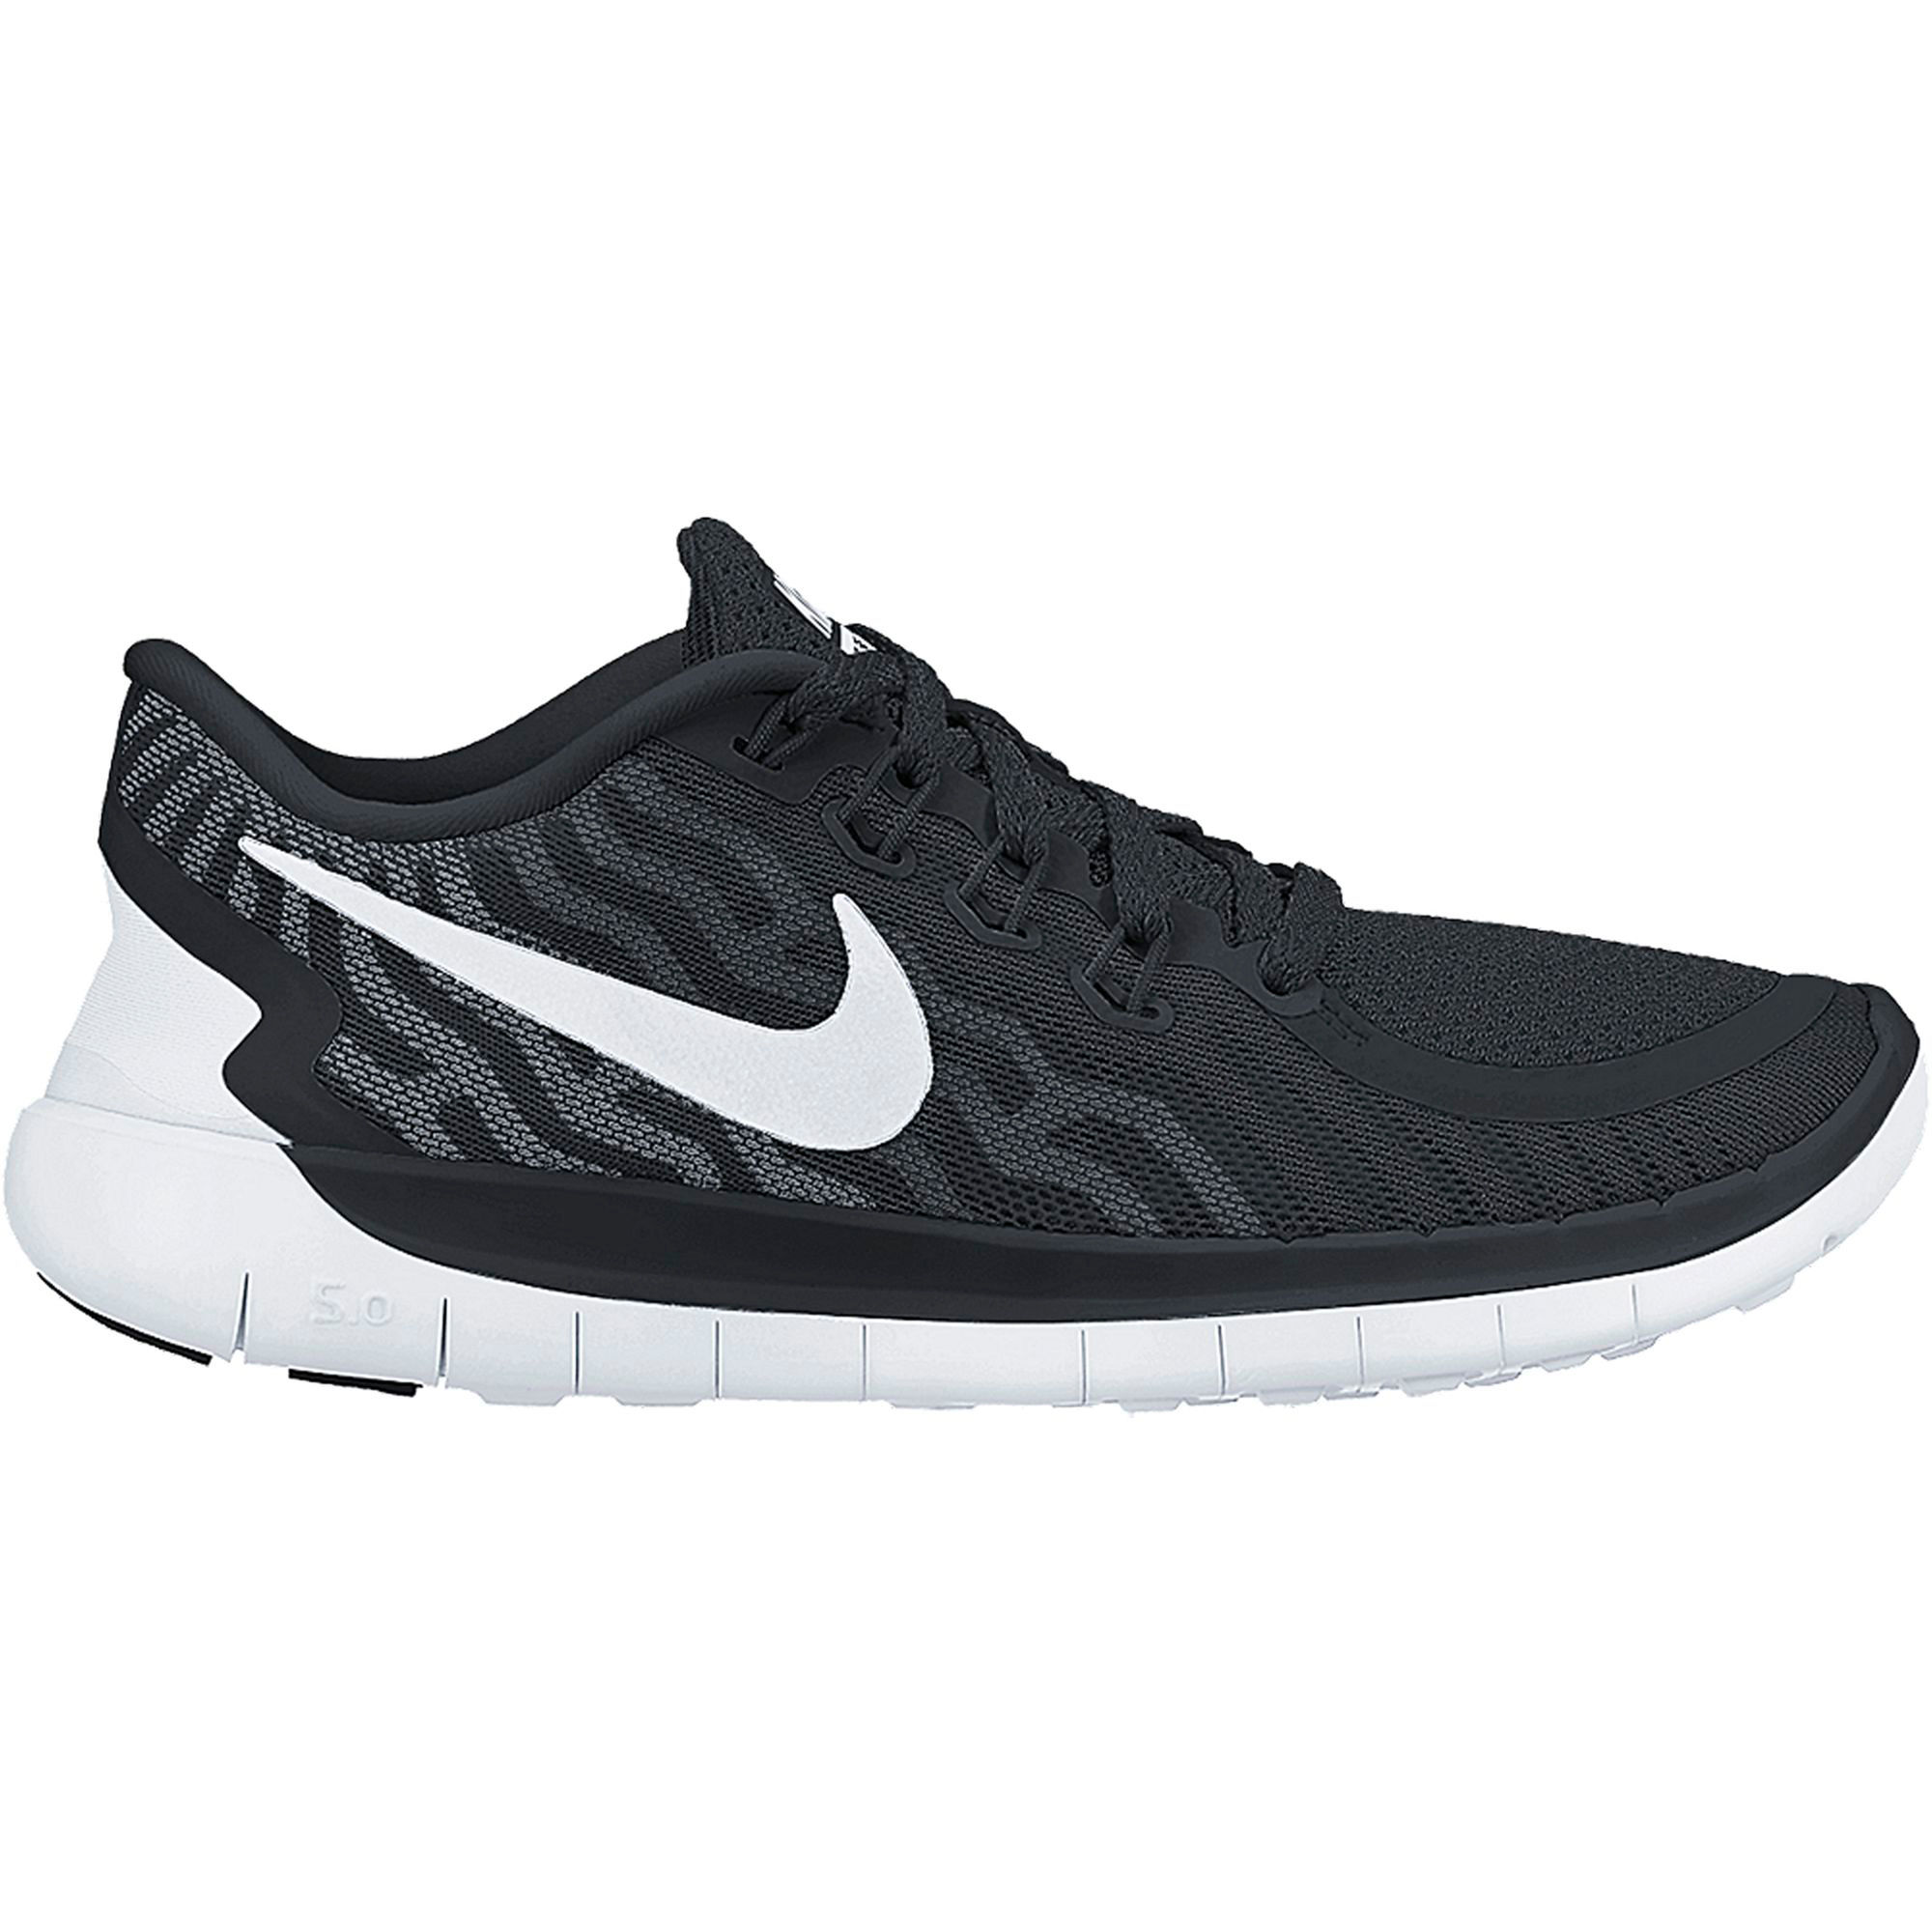 Nike Free 5.0 Black Running Shoes